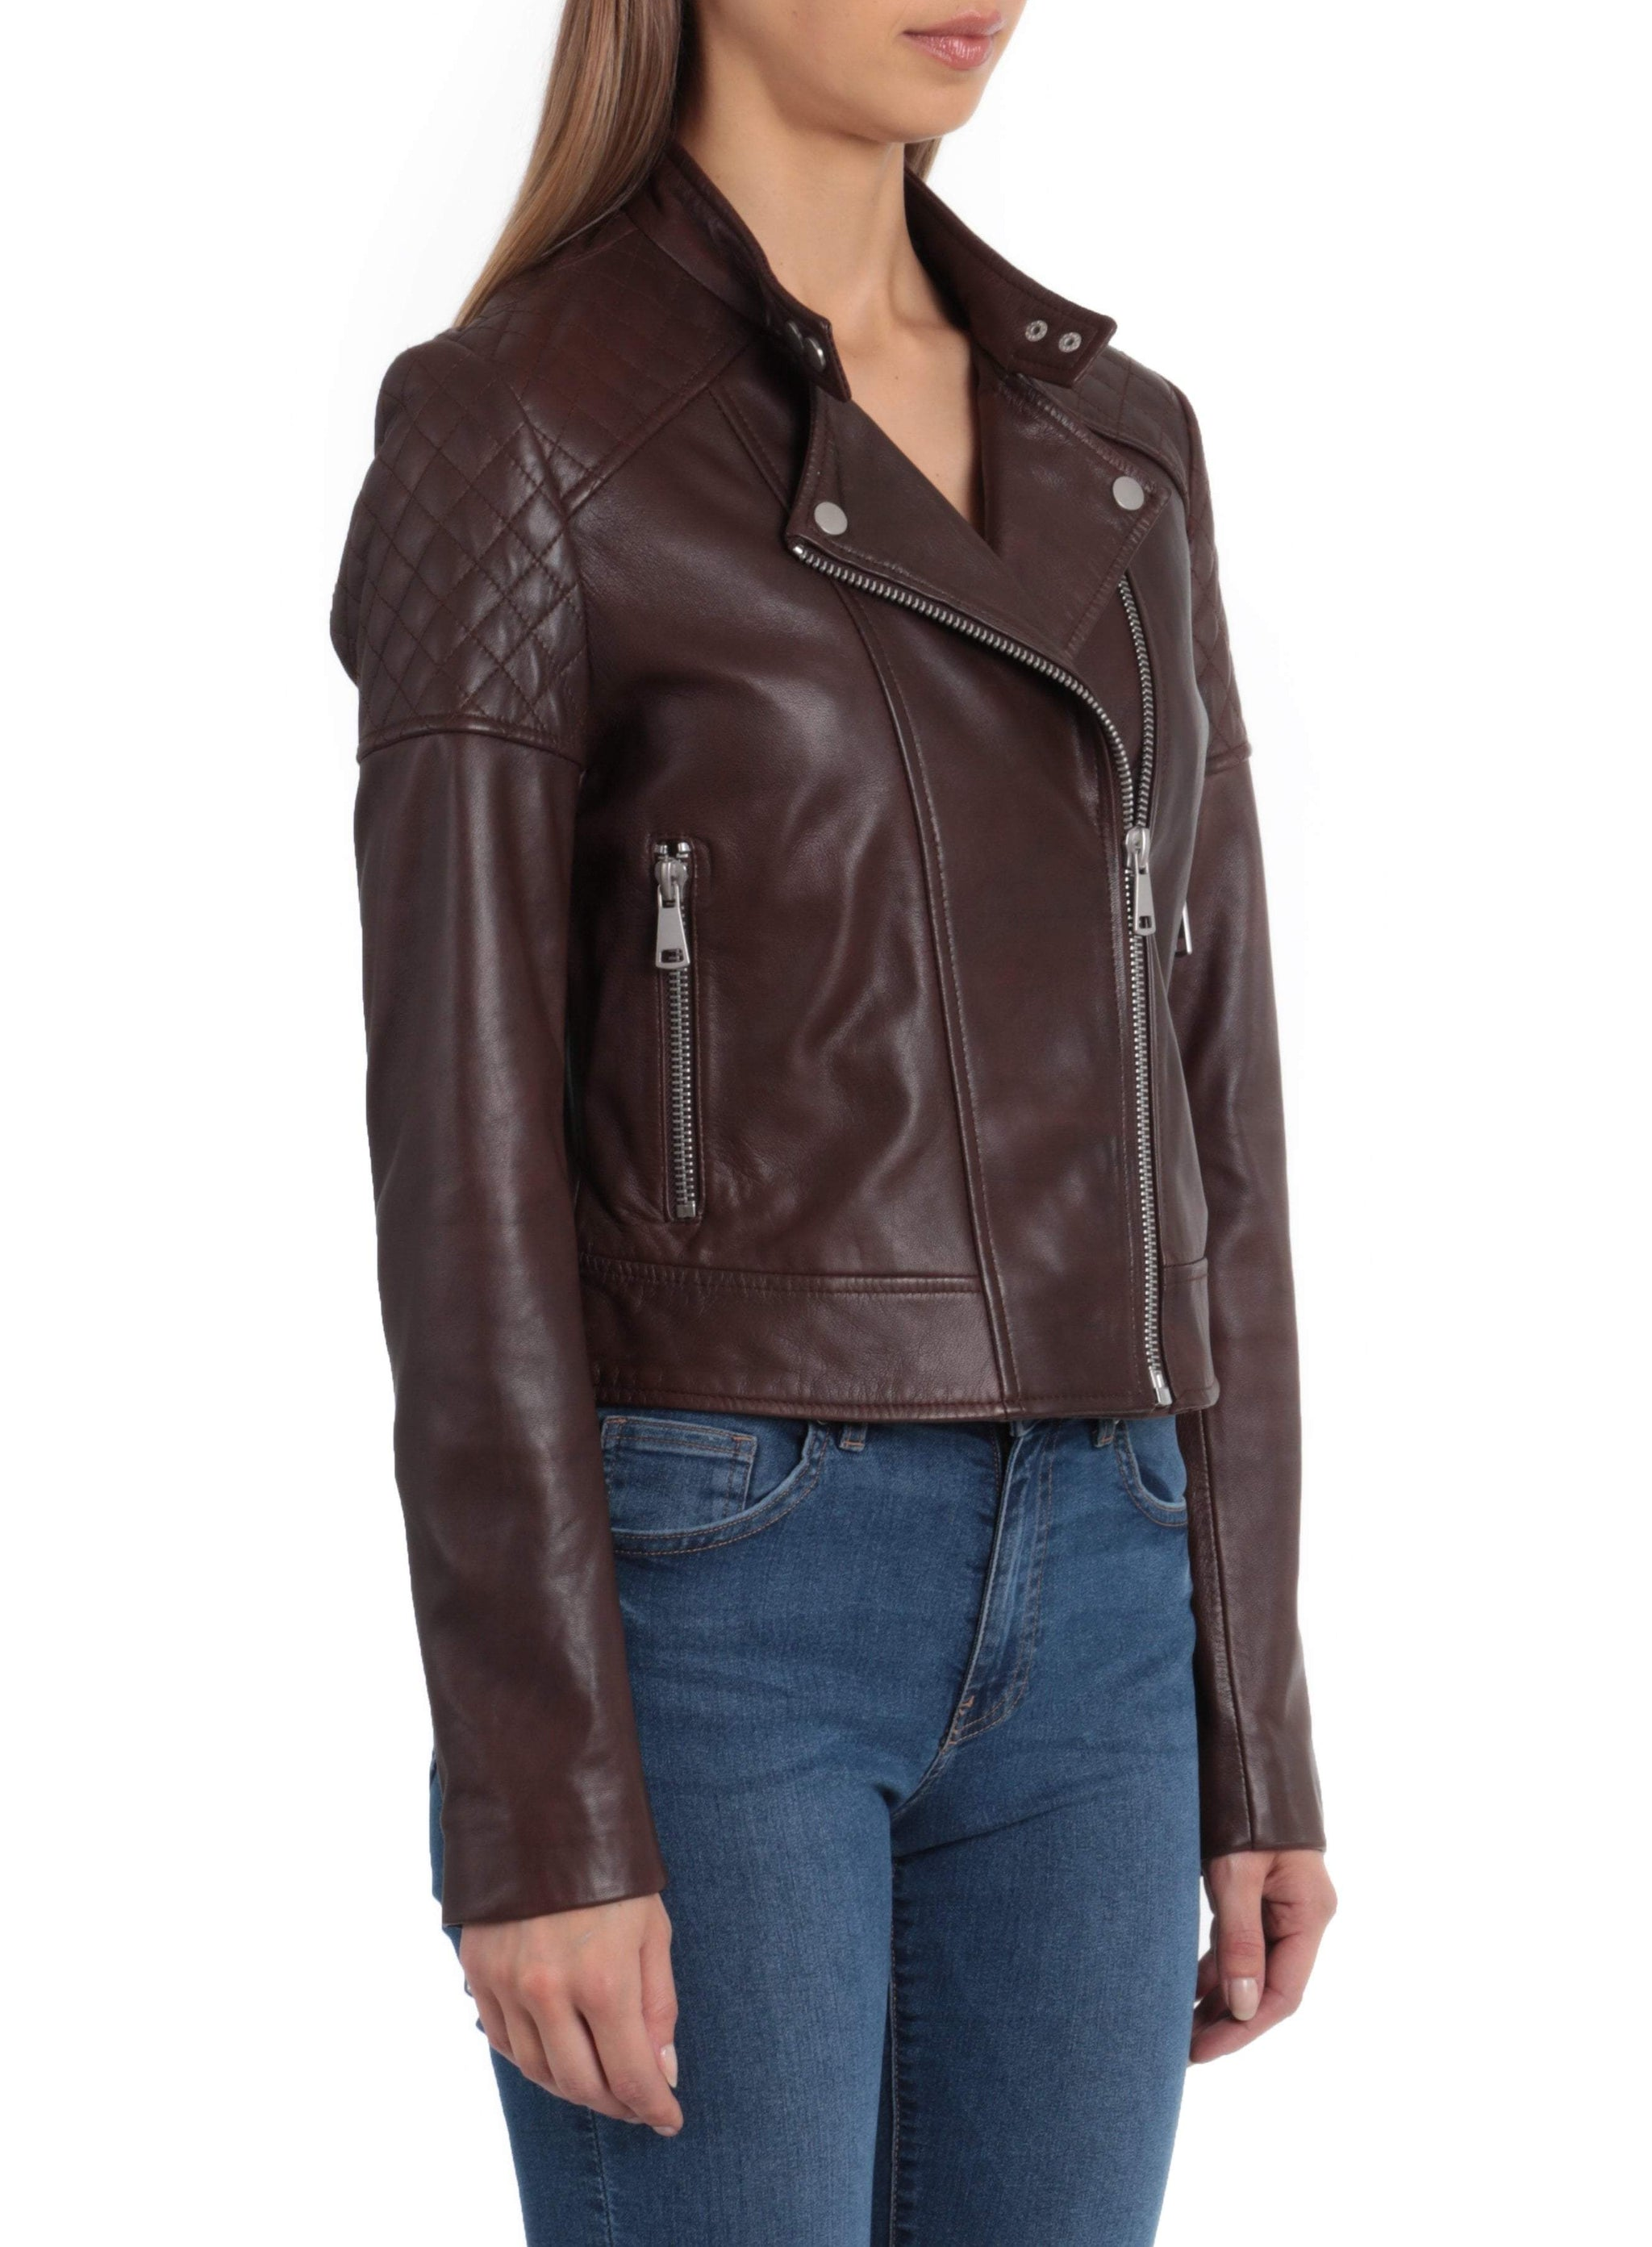 Quilted Leather Moto Jacket - BAGATELLE.CITY Shop Leather | Suede | Jackets